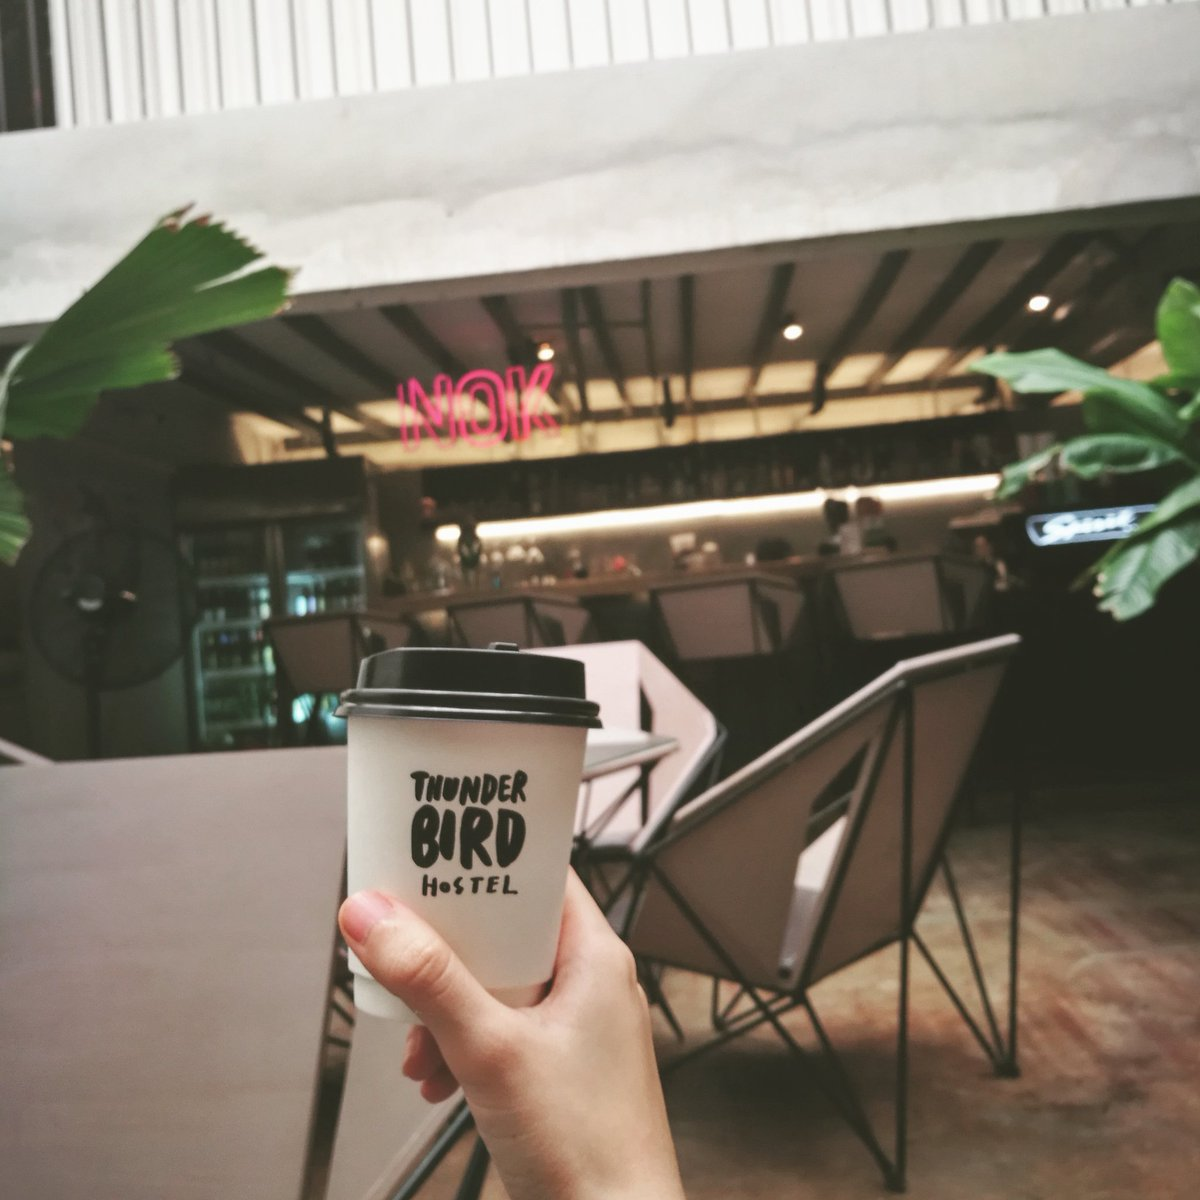 Let&#39;s begin the day with coffee. #thunderbirdhostel #thunderbird #coffeetime #reviewchiangmai #chiangmai #thailand #coffee<br>http://pic.twitter.com/jirsV6hrZO